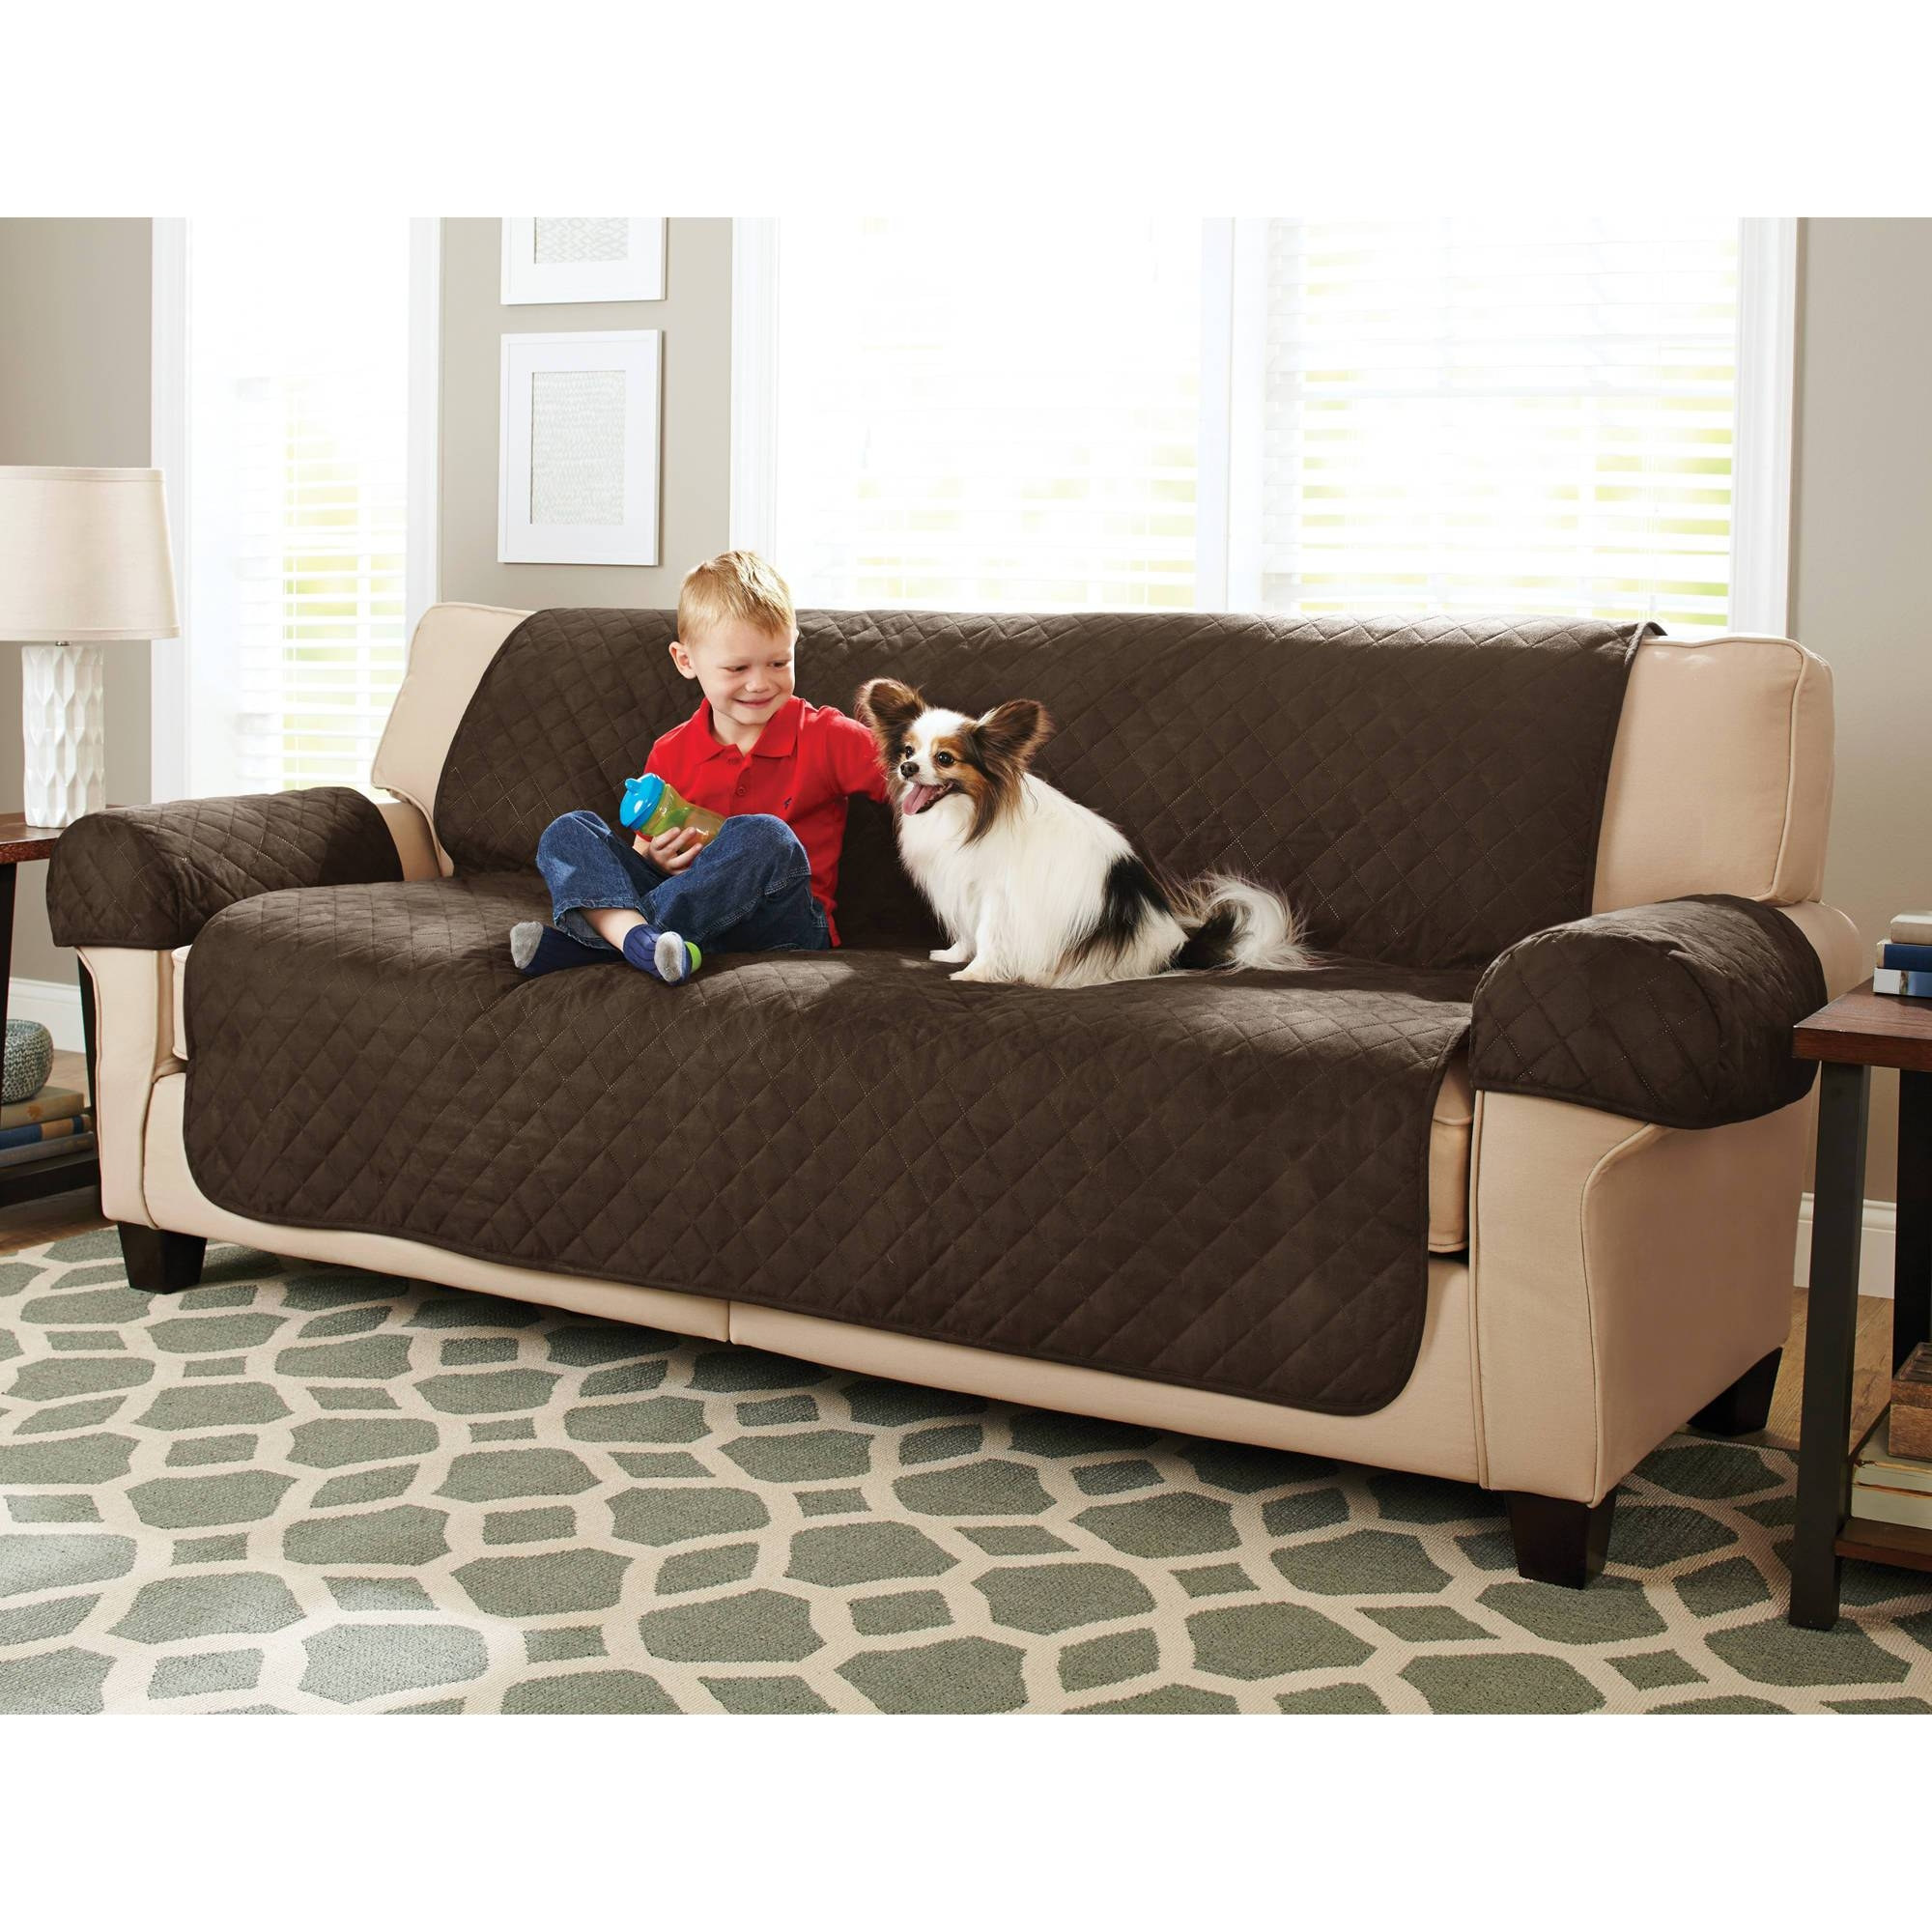 Tips: Cozy Sofa Slipcovers Cheap For Exciting Sofas Decorating pertaining to Slipcover for Reclining Sofas (Image 14 of 15)